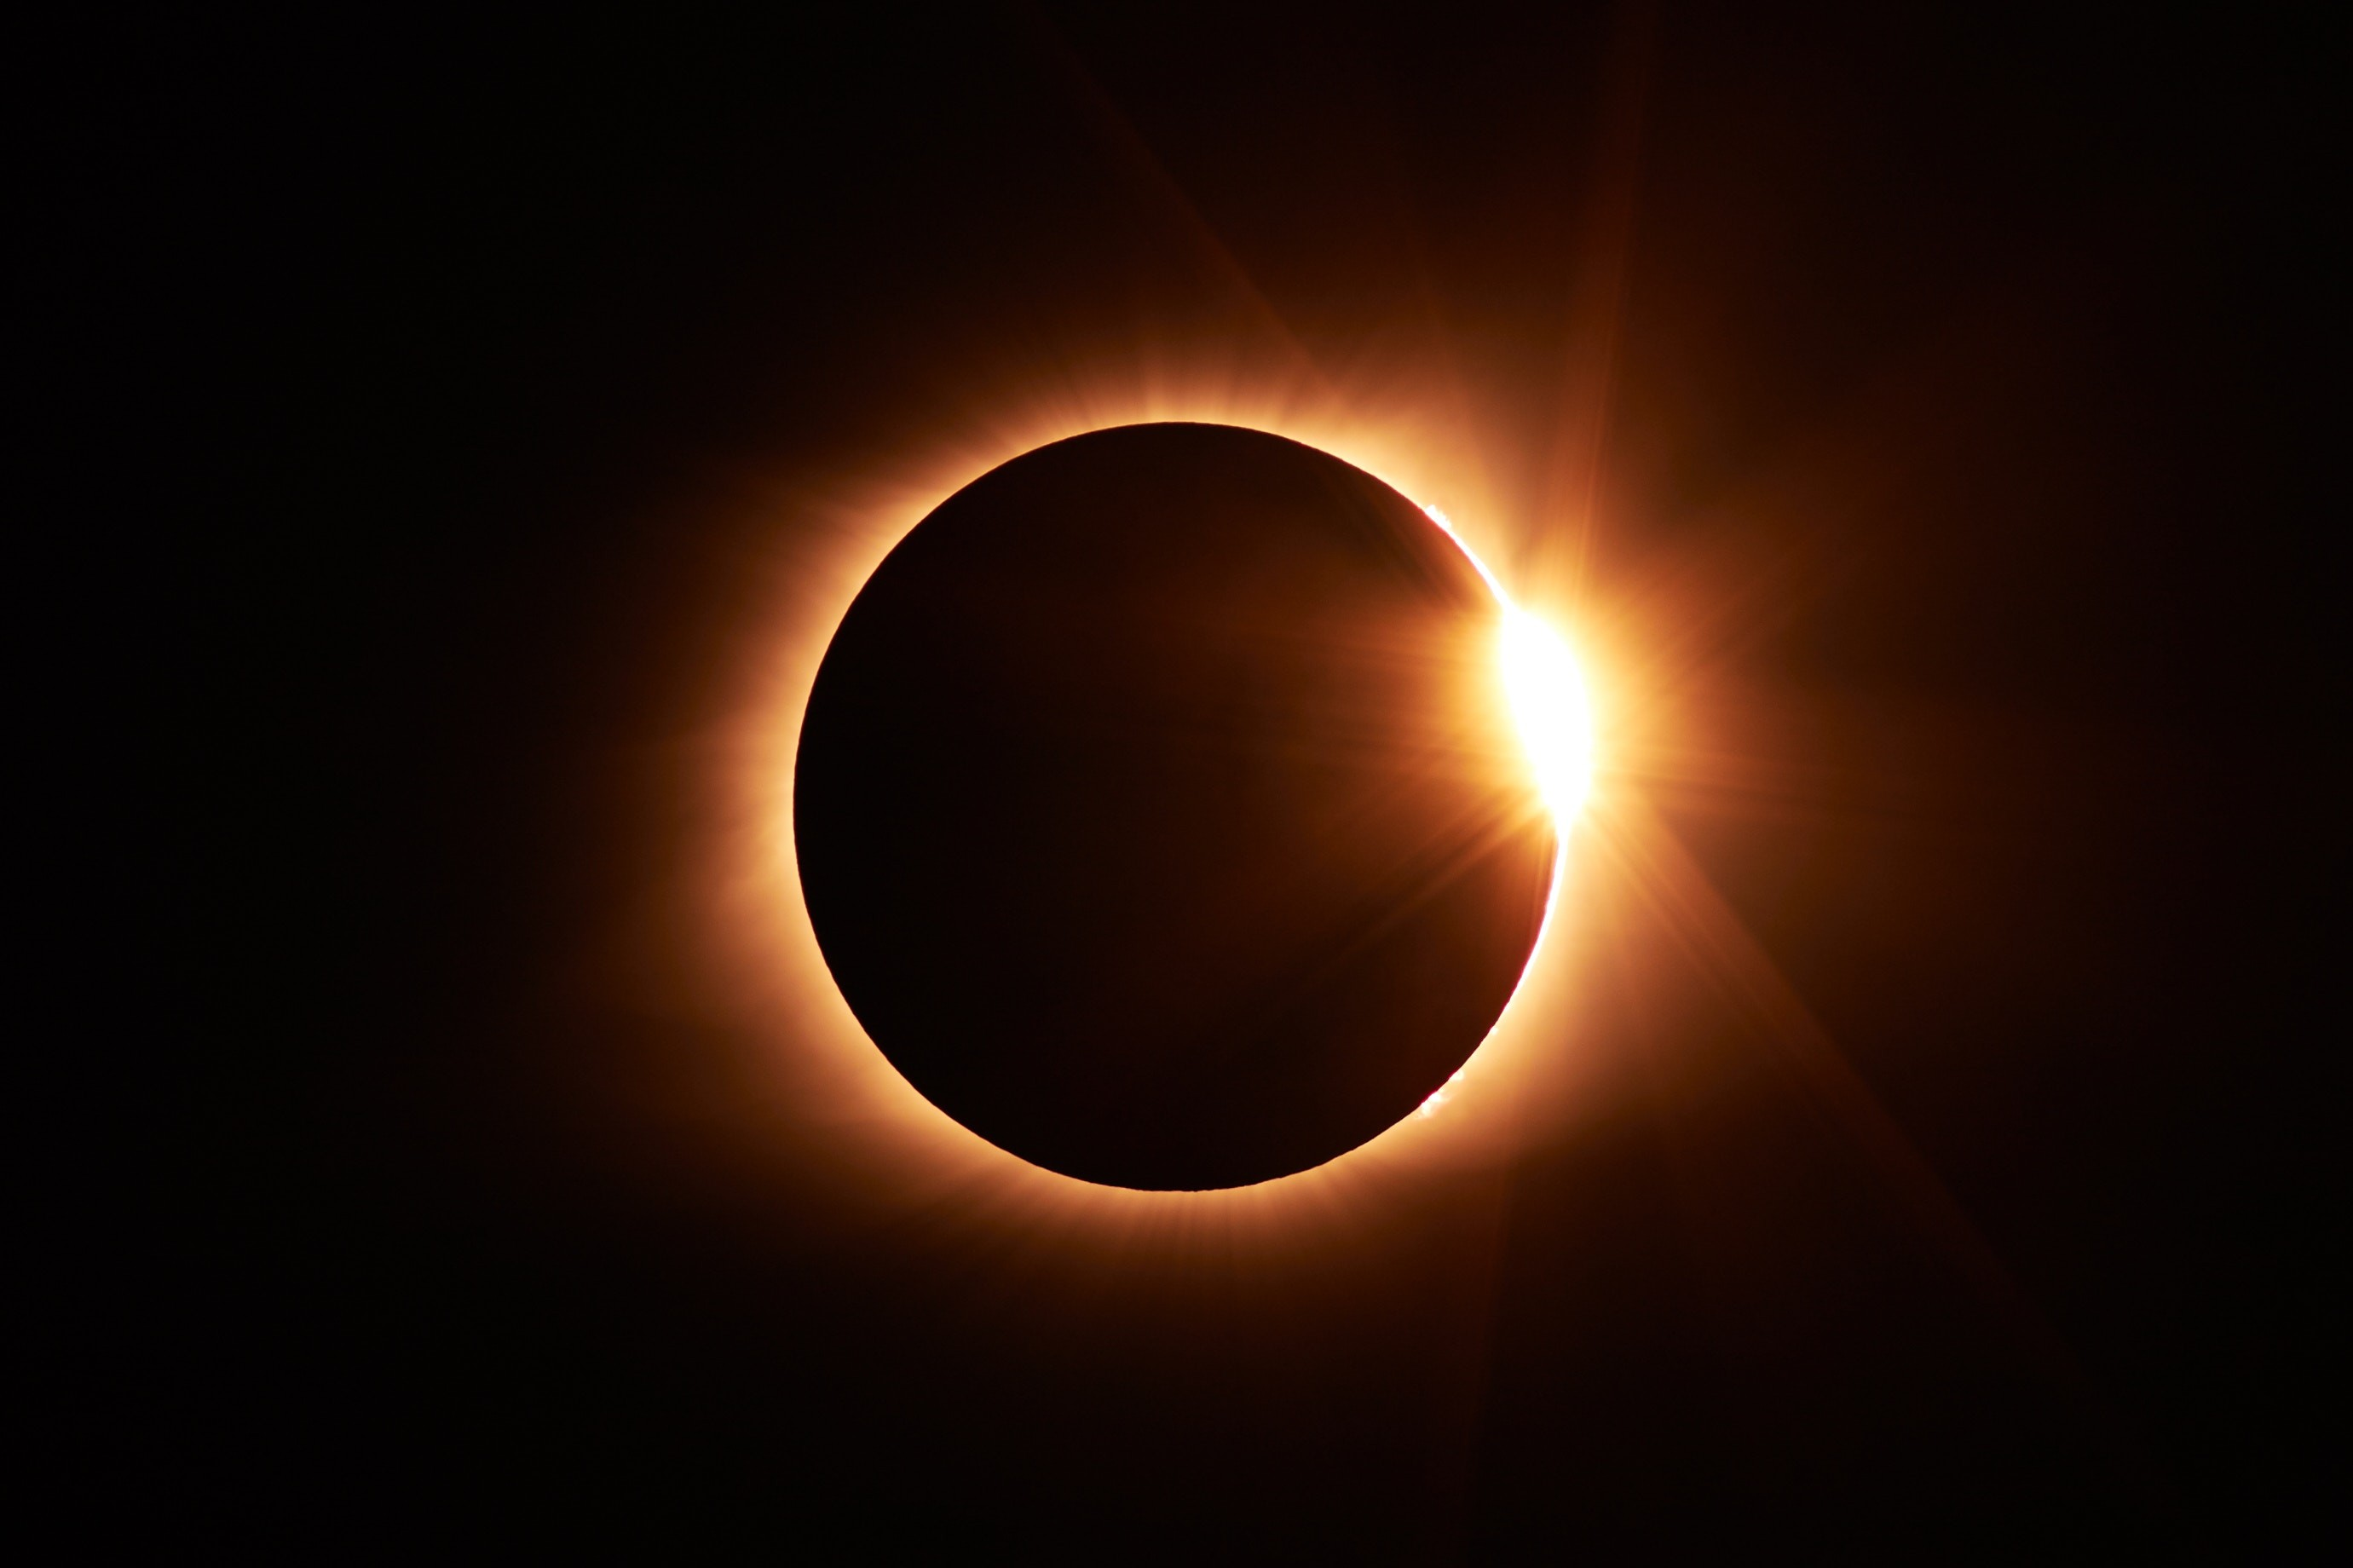 Annular Solar Eclipse of 26 Dec, AD | The Classical Astrologer